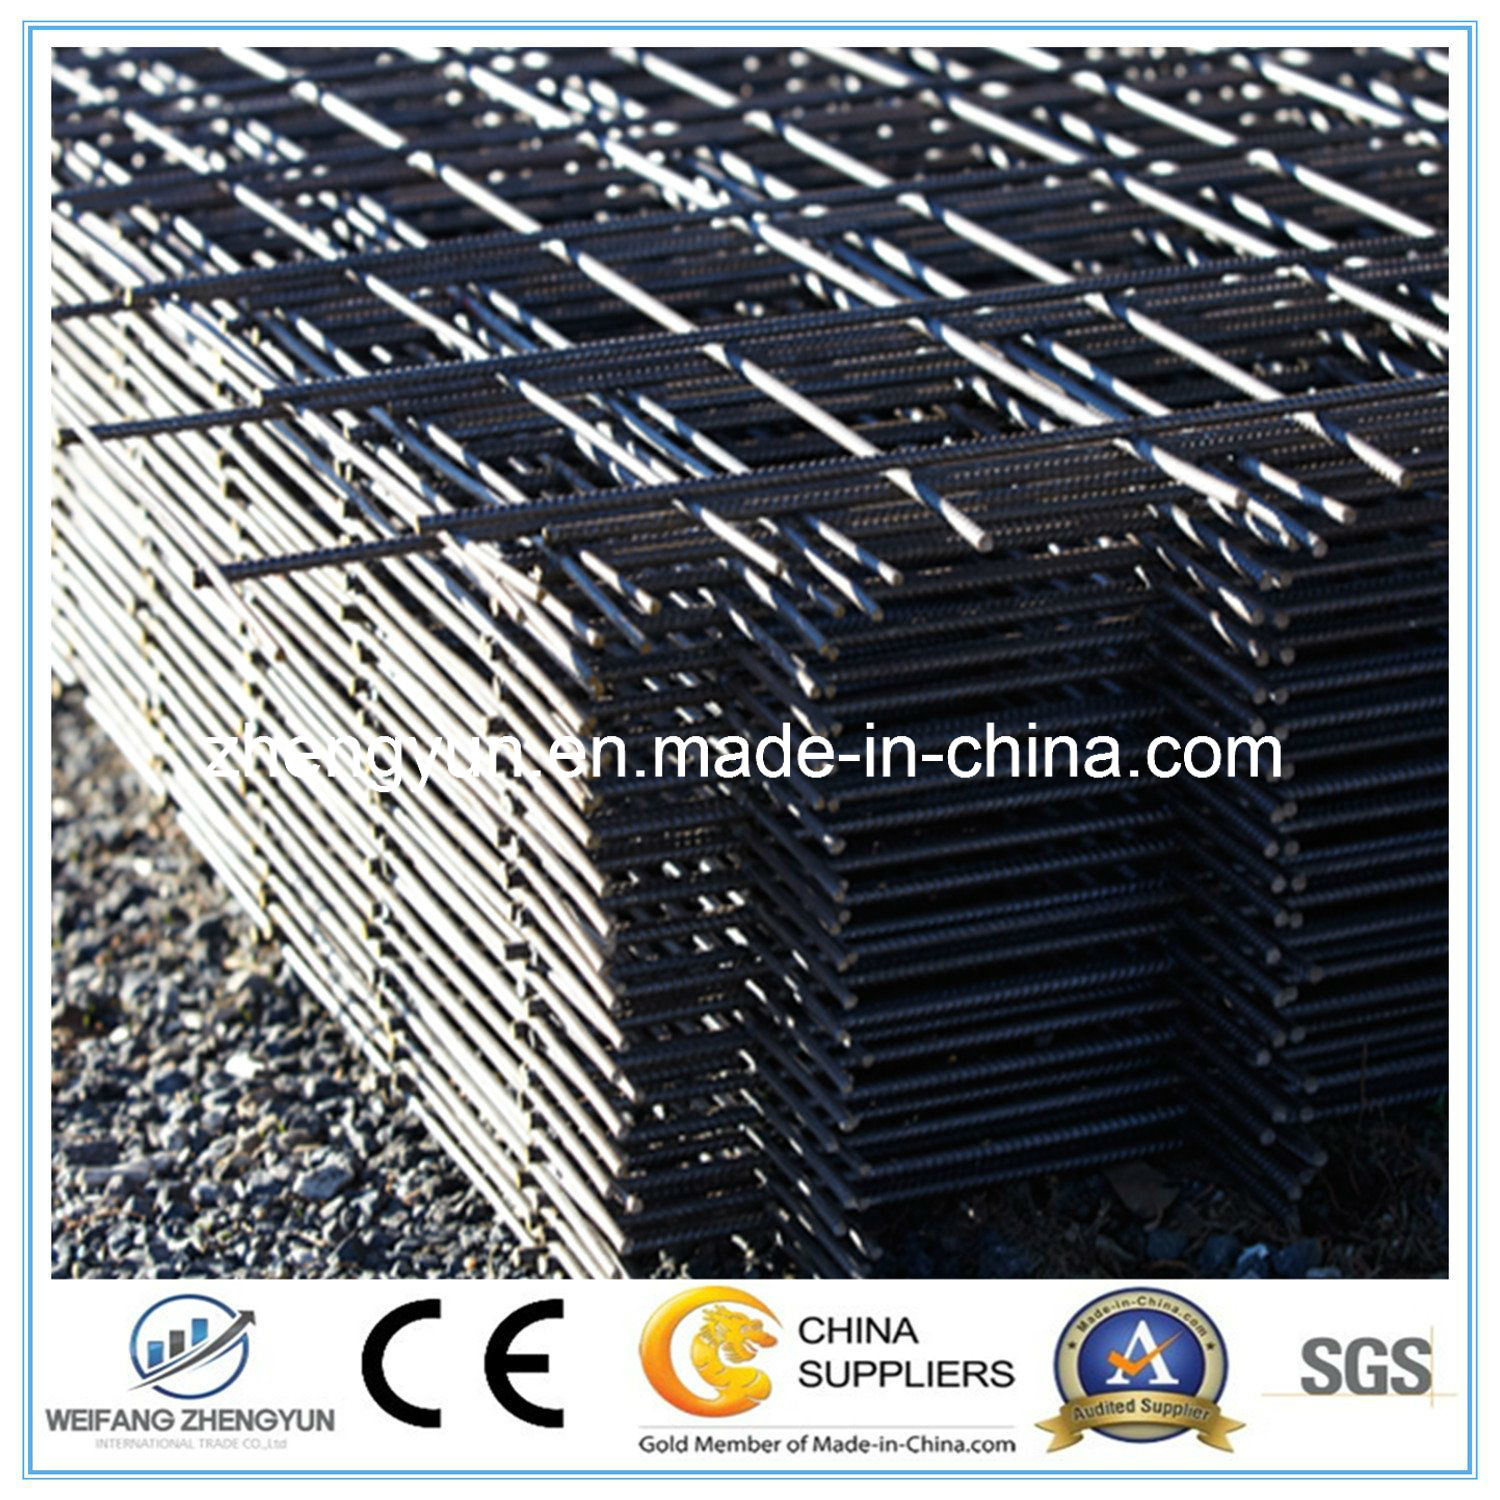 Concrete Construction Reinforcement Steel Welded Wire Mesh